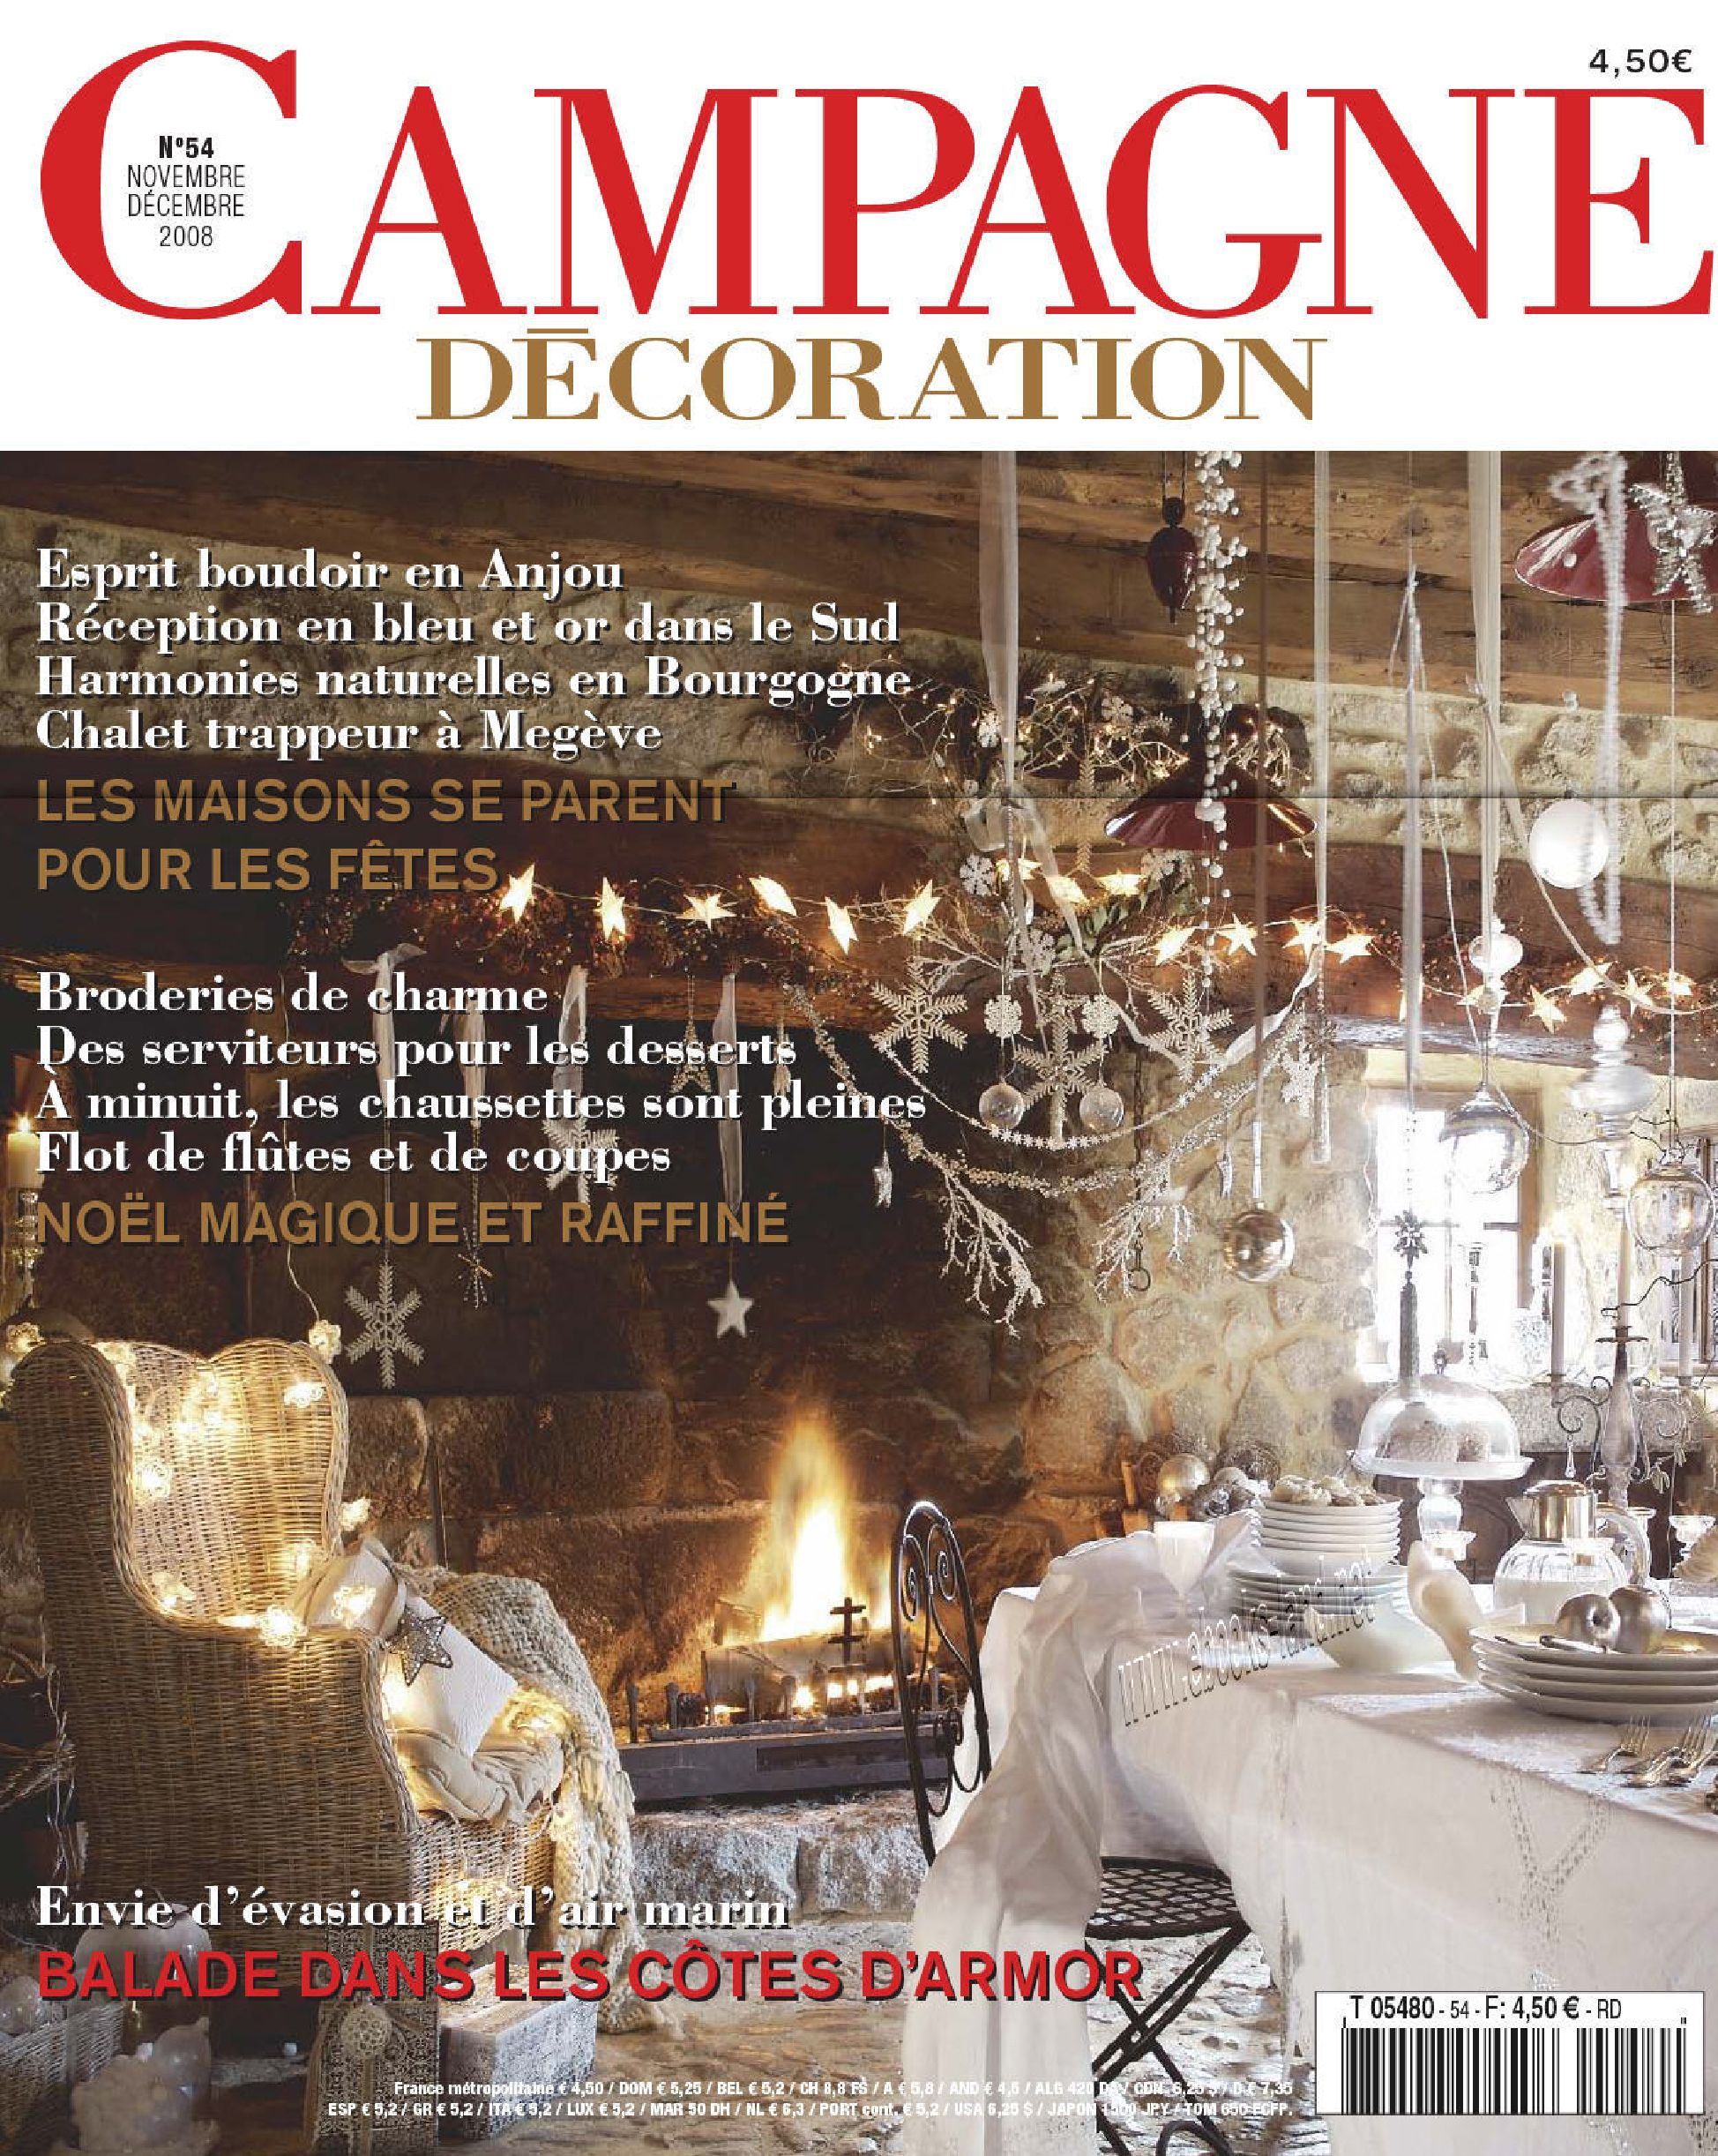 Magazine Campagne Décoration Campagne Decoration N54 French Mag Eland